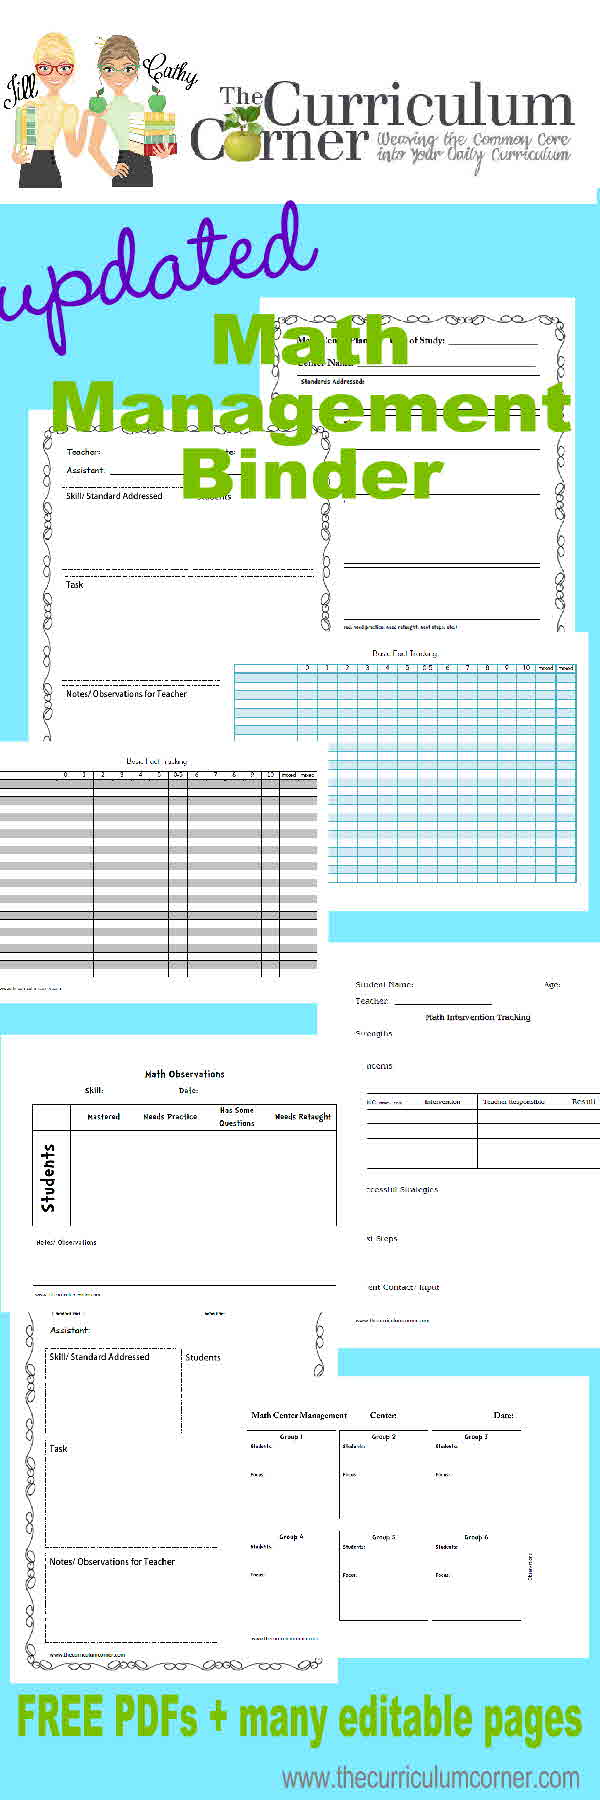 FREE Updated Math Management Binder from The Curriculum Corner for Planning Your Math Workshop - great resource for all teachers!